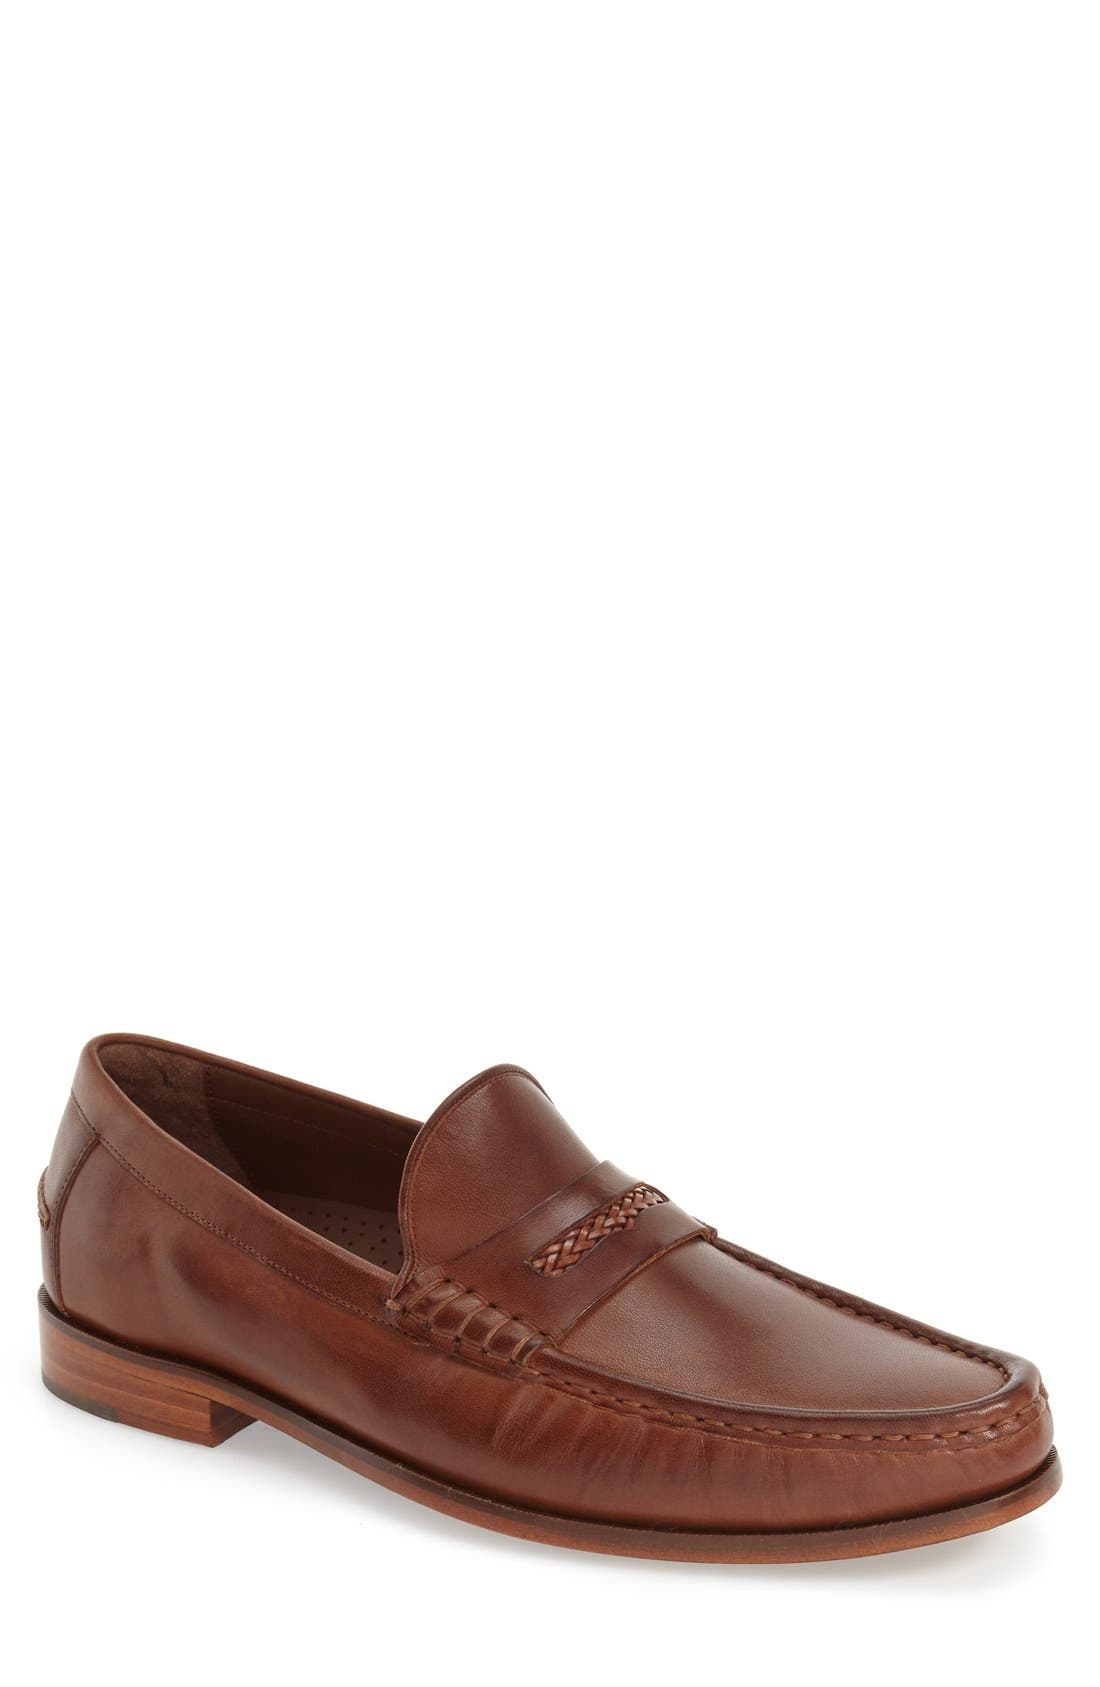 COLE HAAN 'Pinch Gotham' Penny Loafer